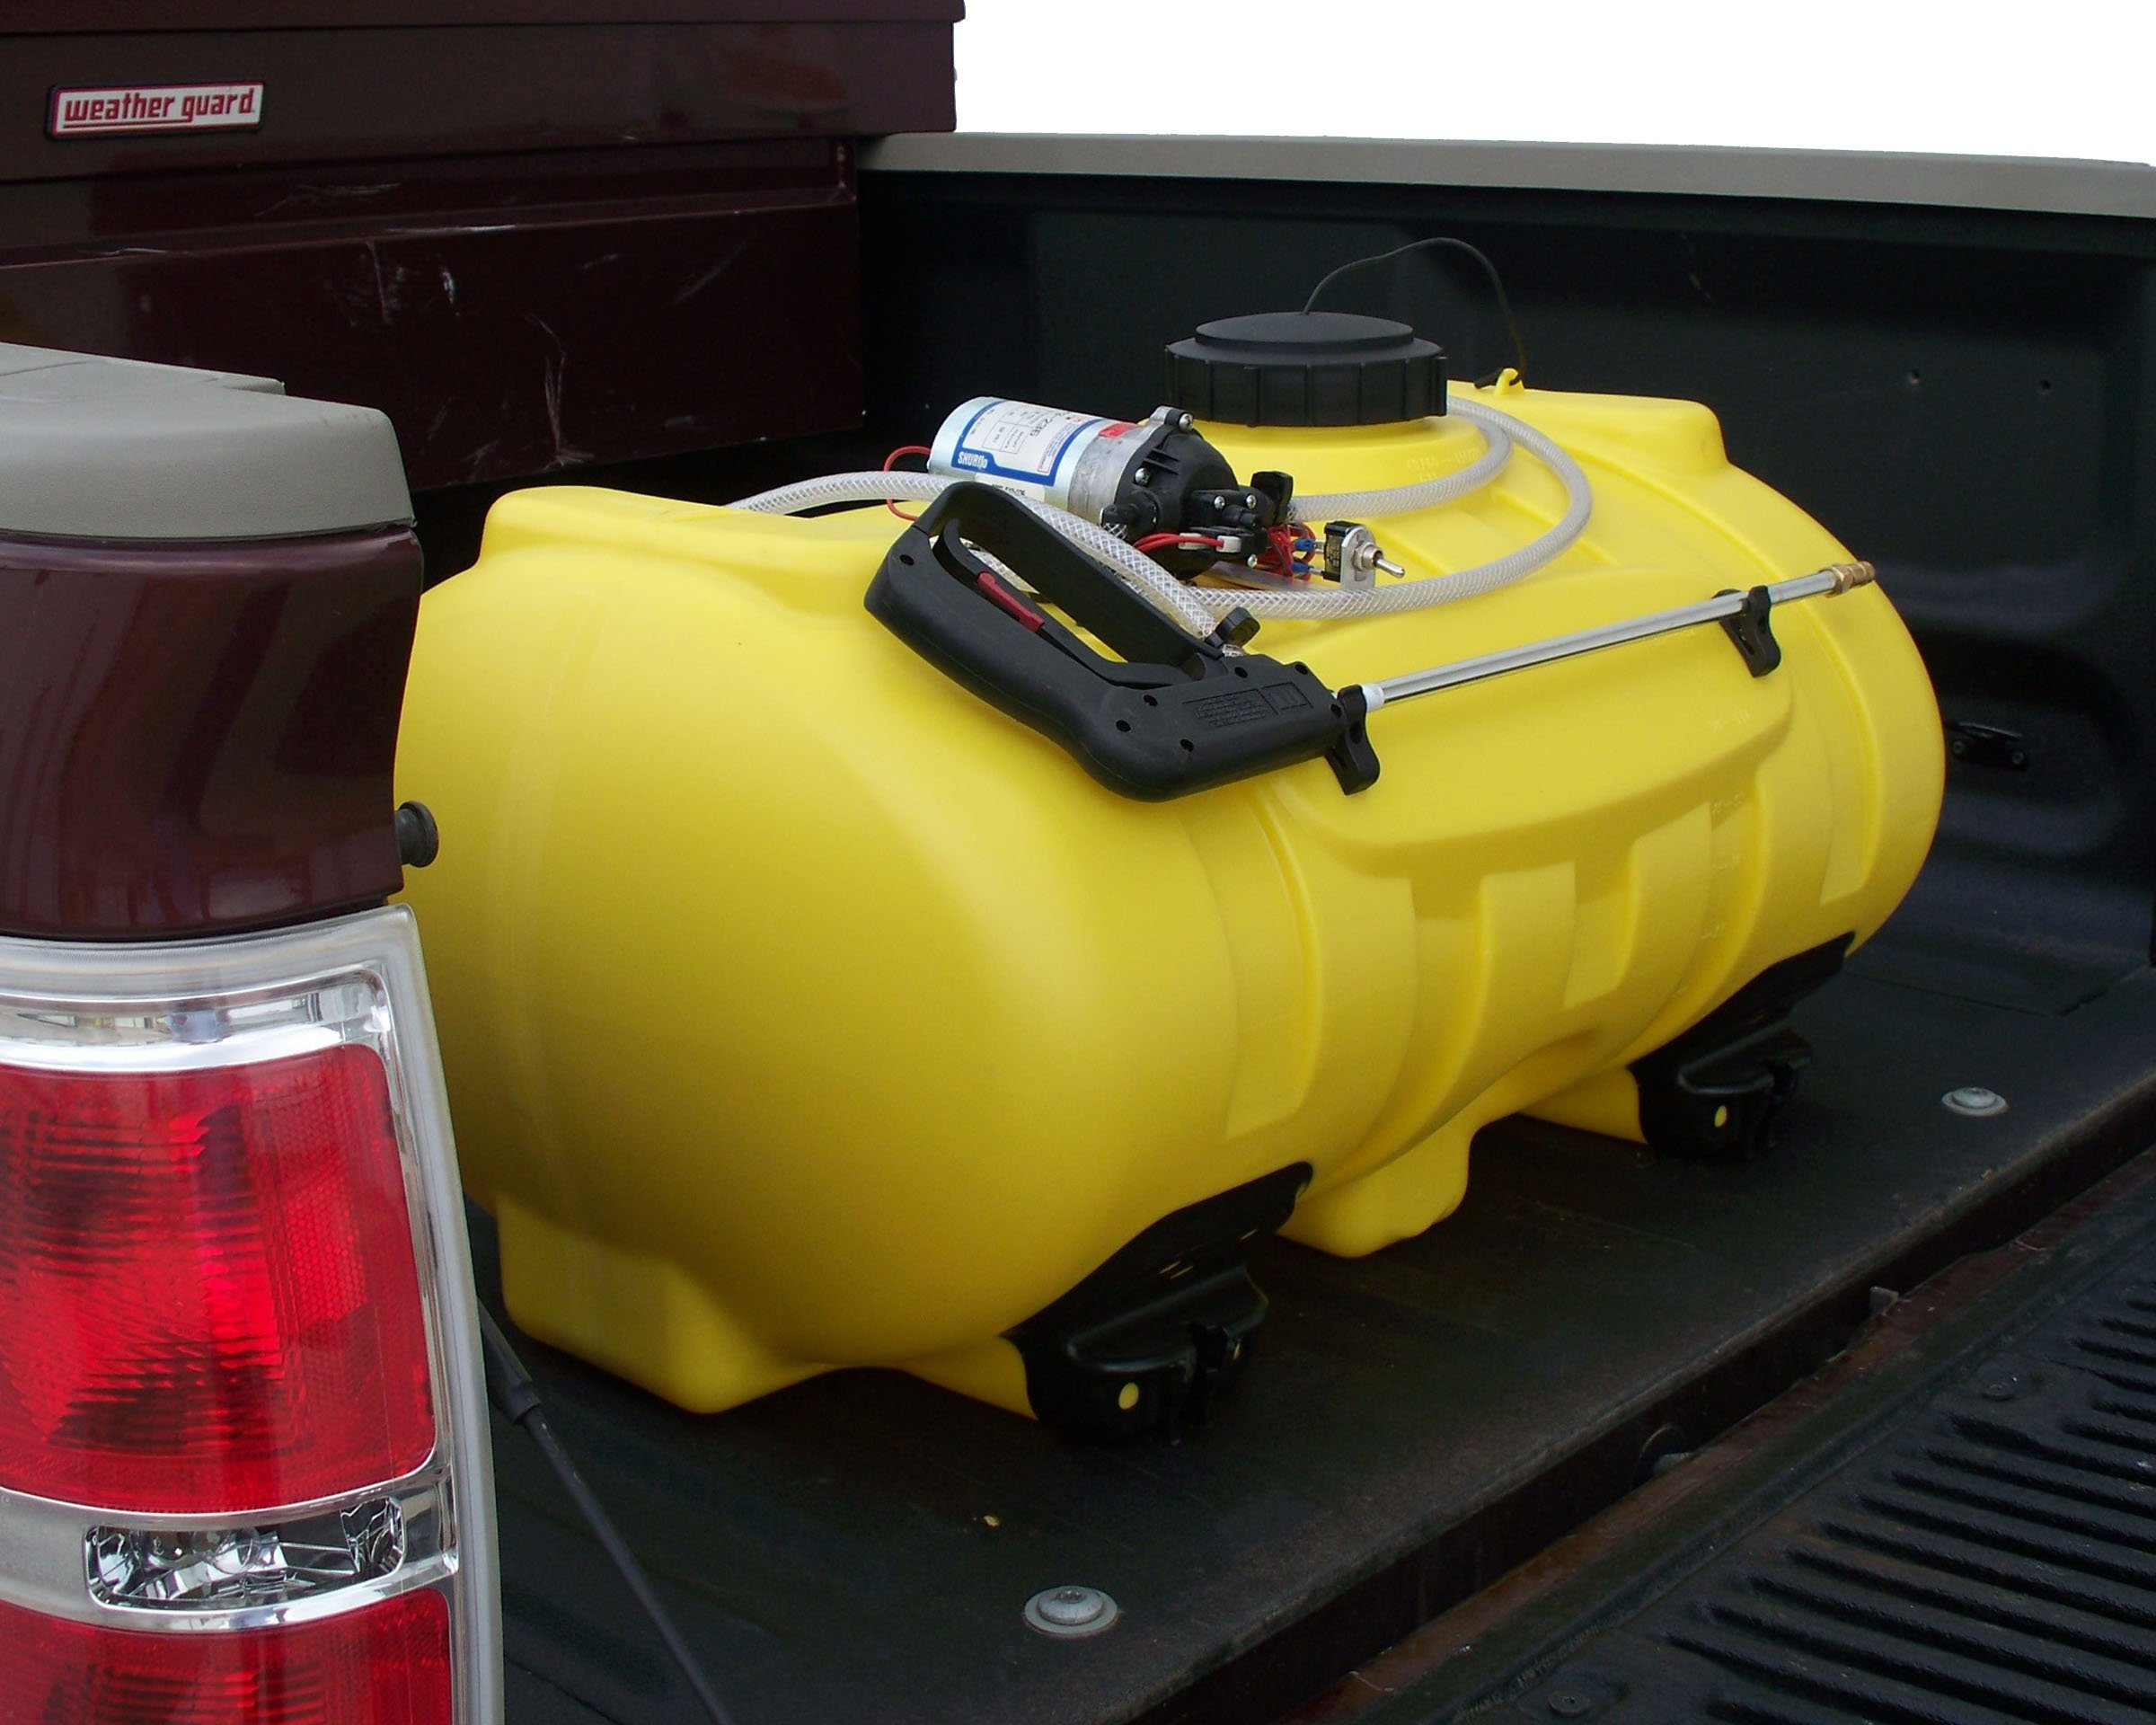 SuperSpot 40 Gallon Sprayer Unit - 1.8 GPM Tank, Pump & Handwand By Great Day SS4060